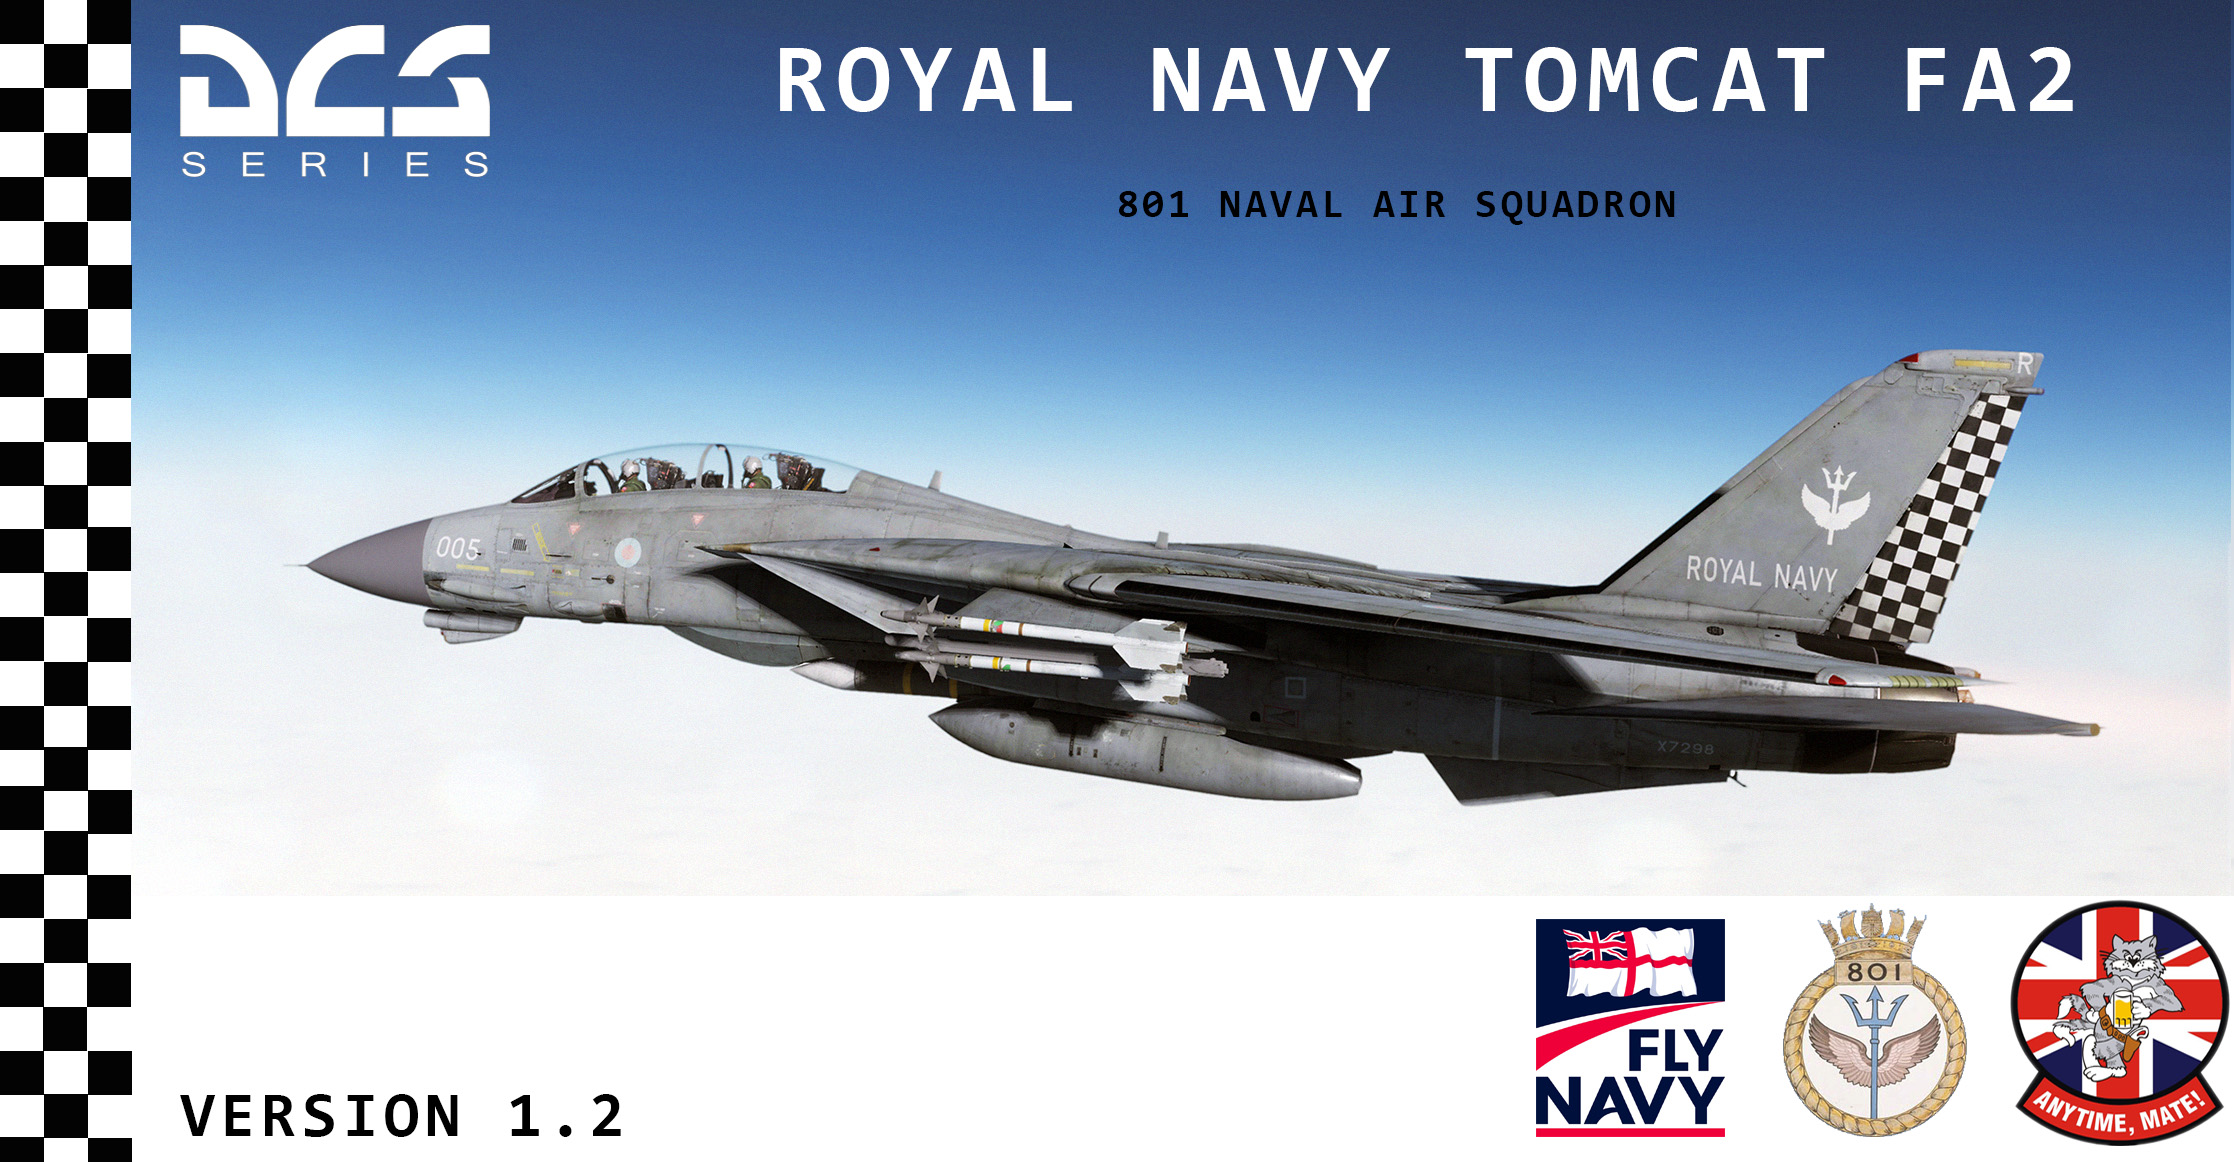 Royal Navy Tomcat FA2 801 Squadron version 1.3